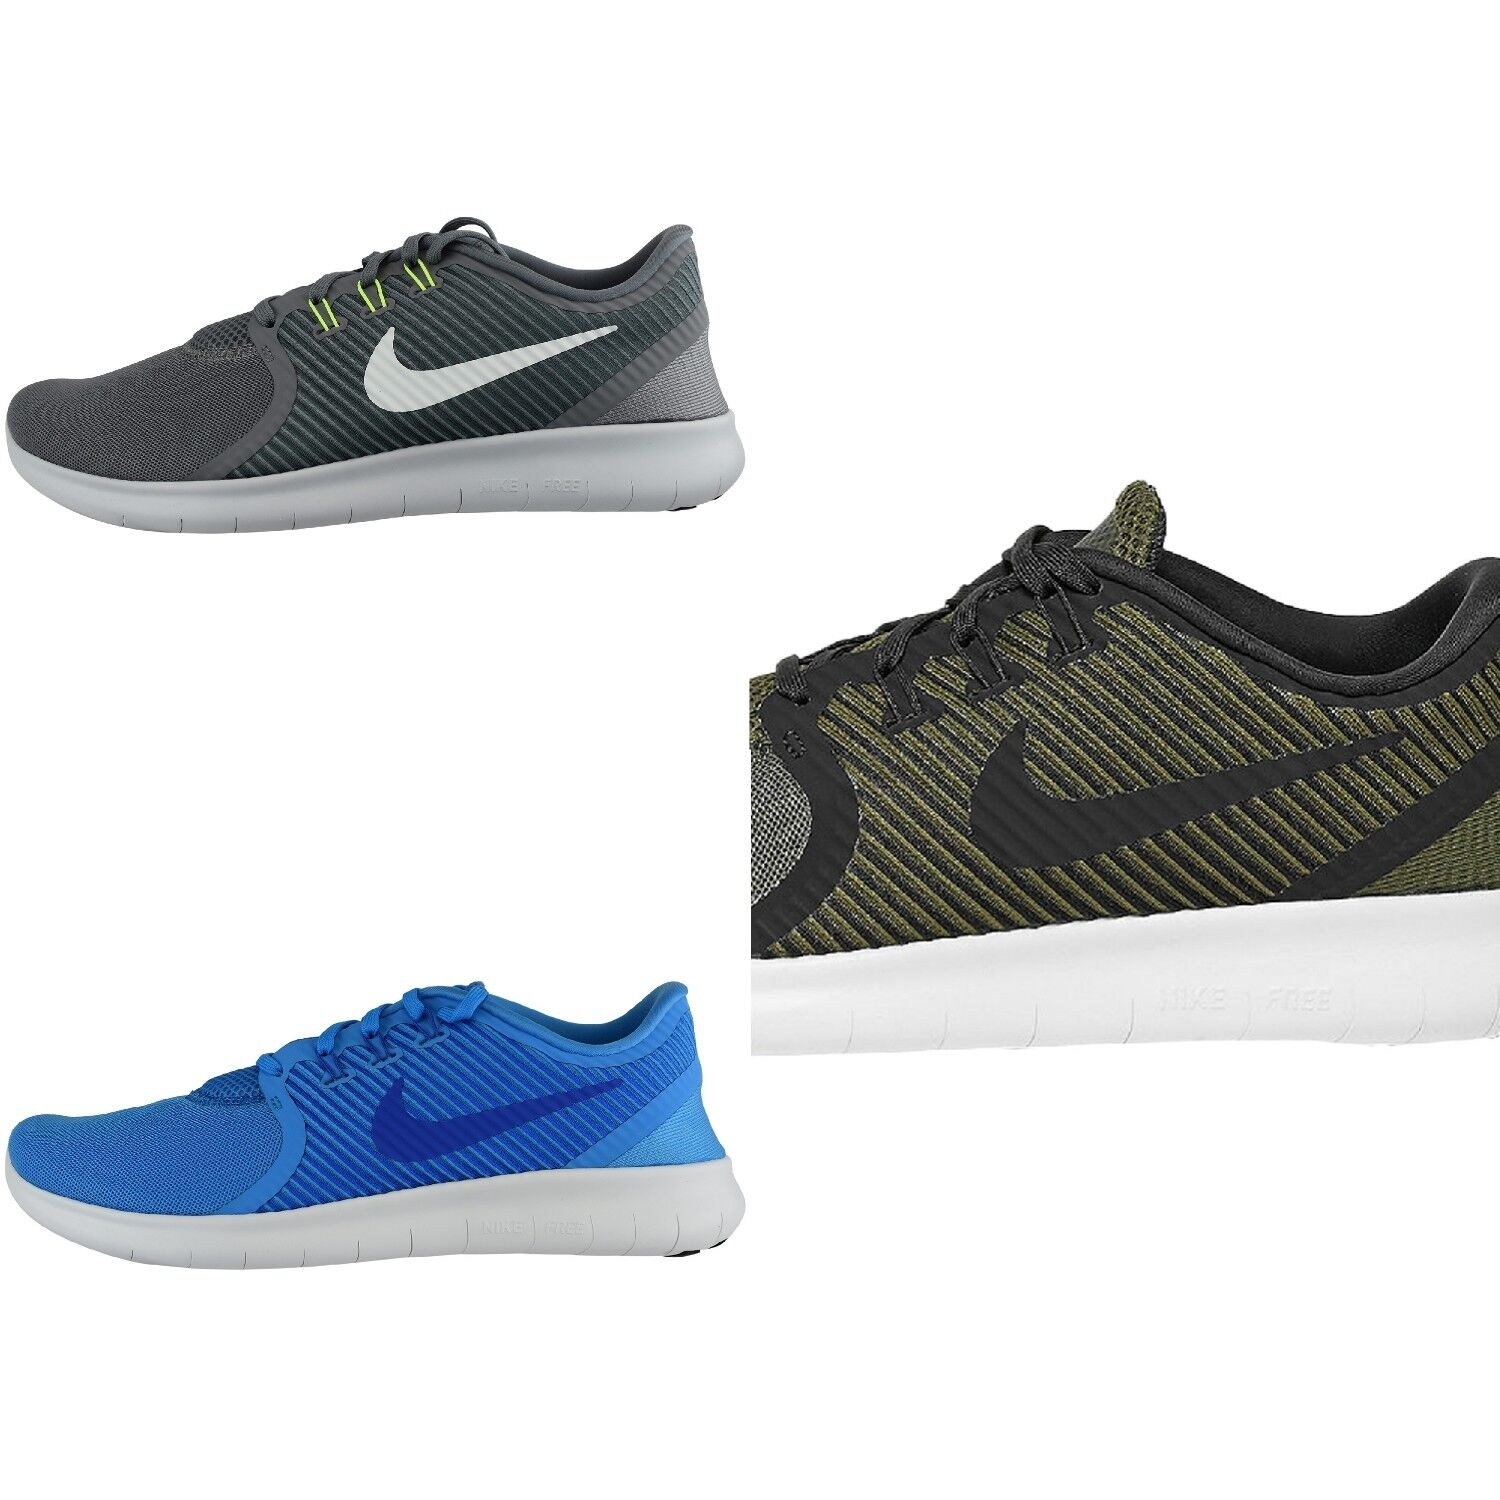 Nike Free-run CMTR shoes RUNNING sportschh ZAPATILLA DEPORTIVA TEXTIL